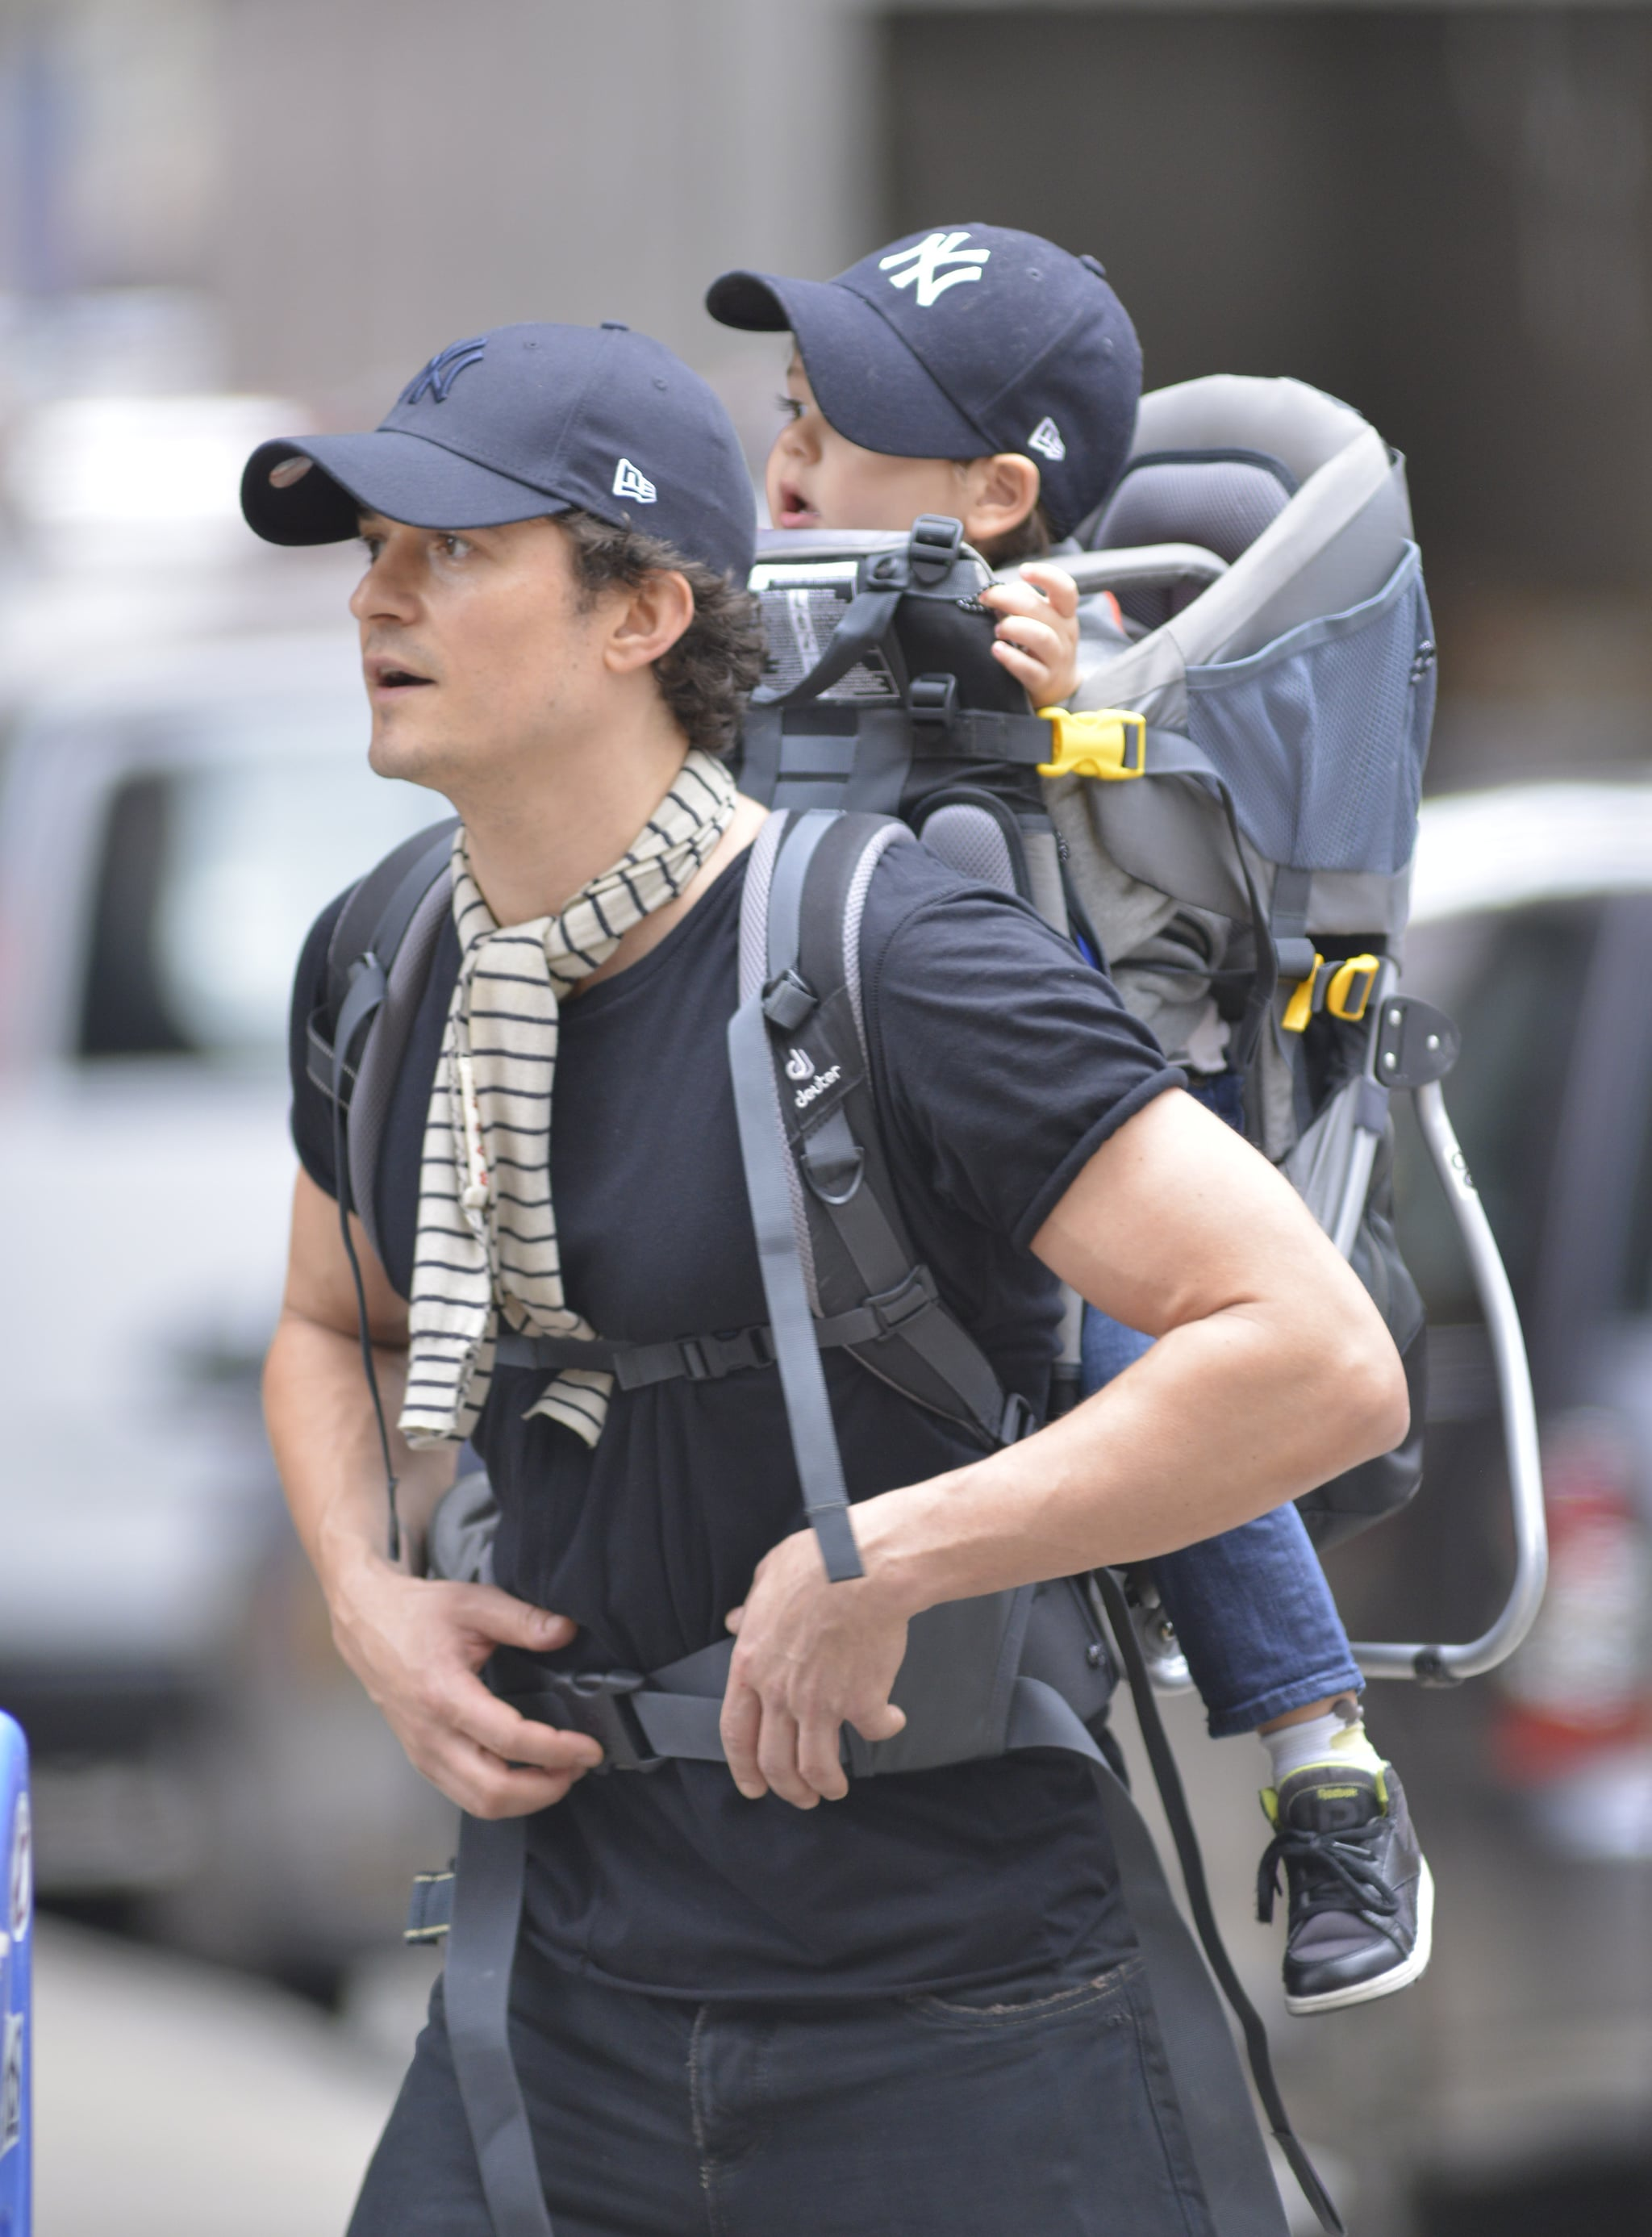 Orlando Bloom carried his son, Flynn, on his back while out in NYC.